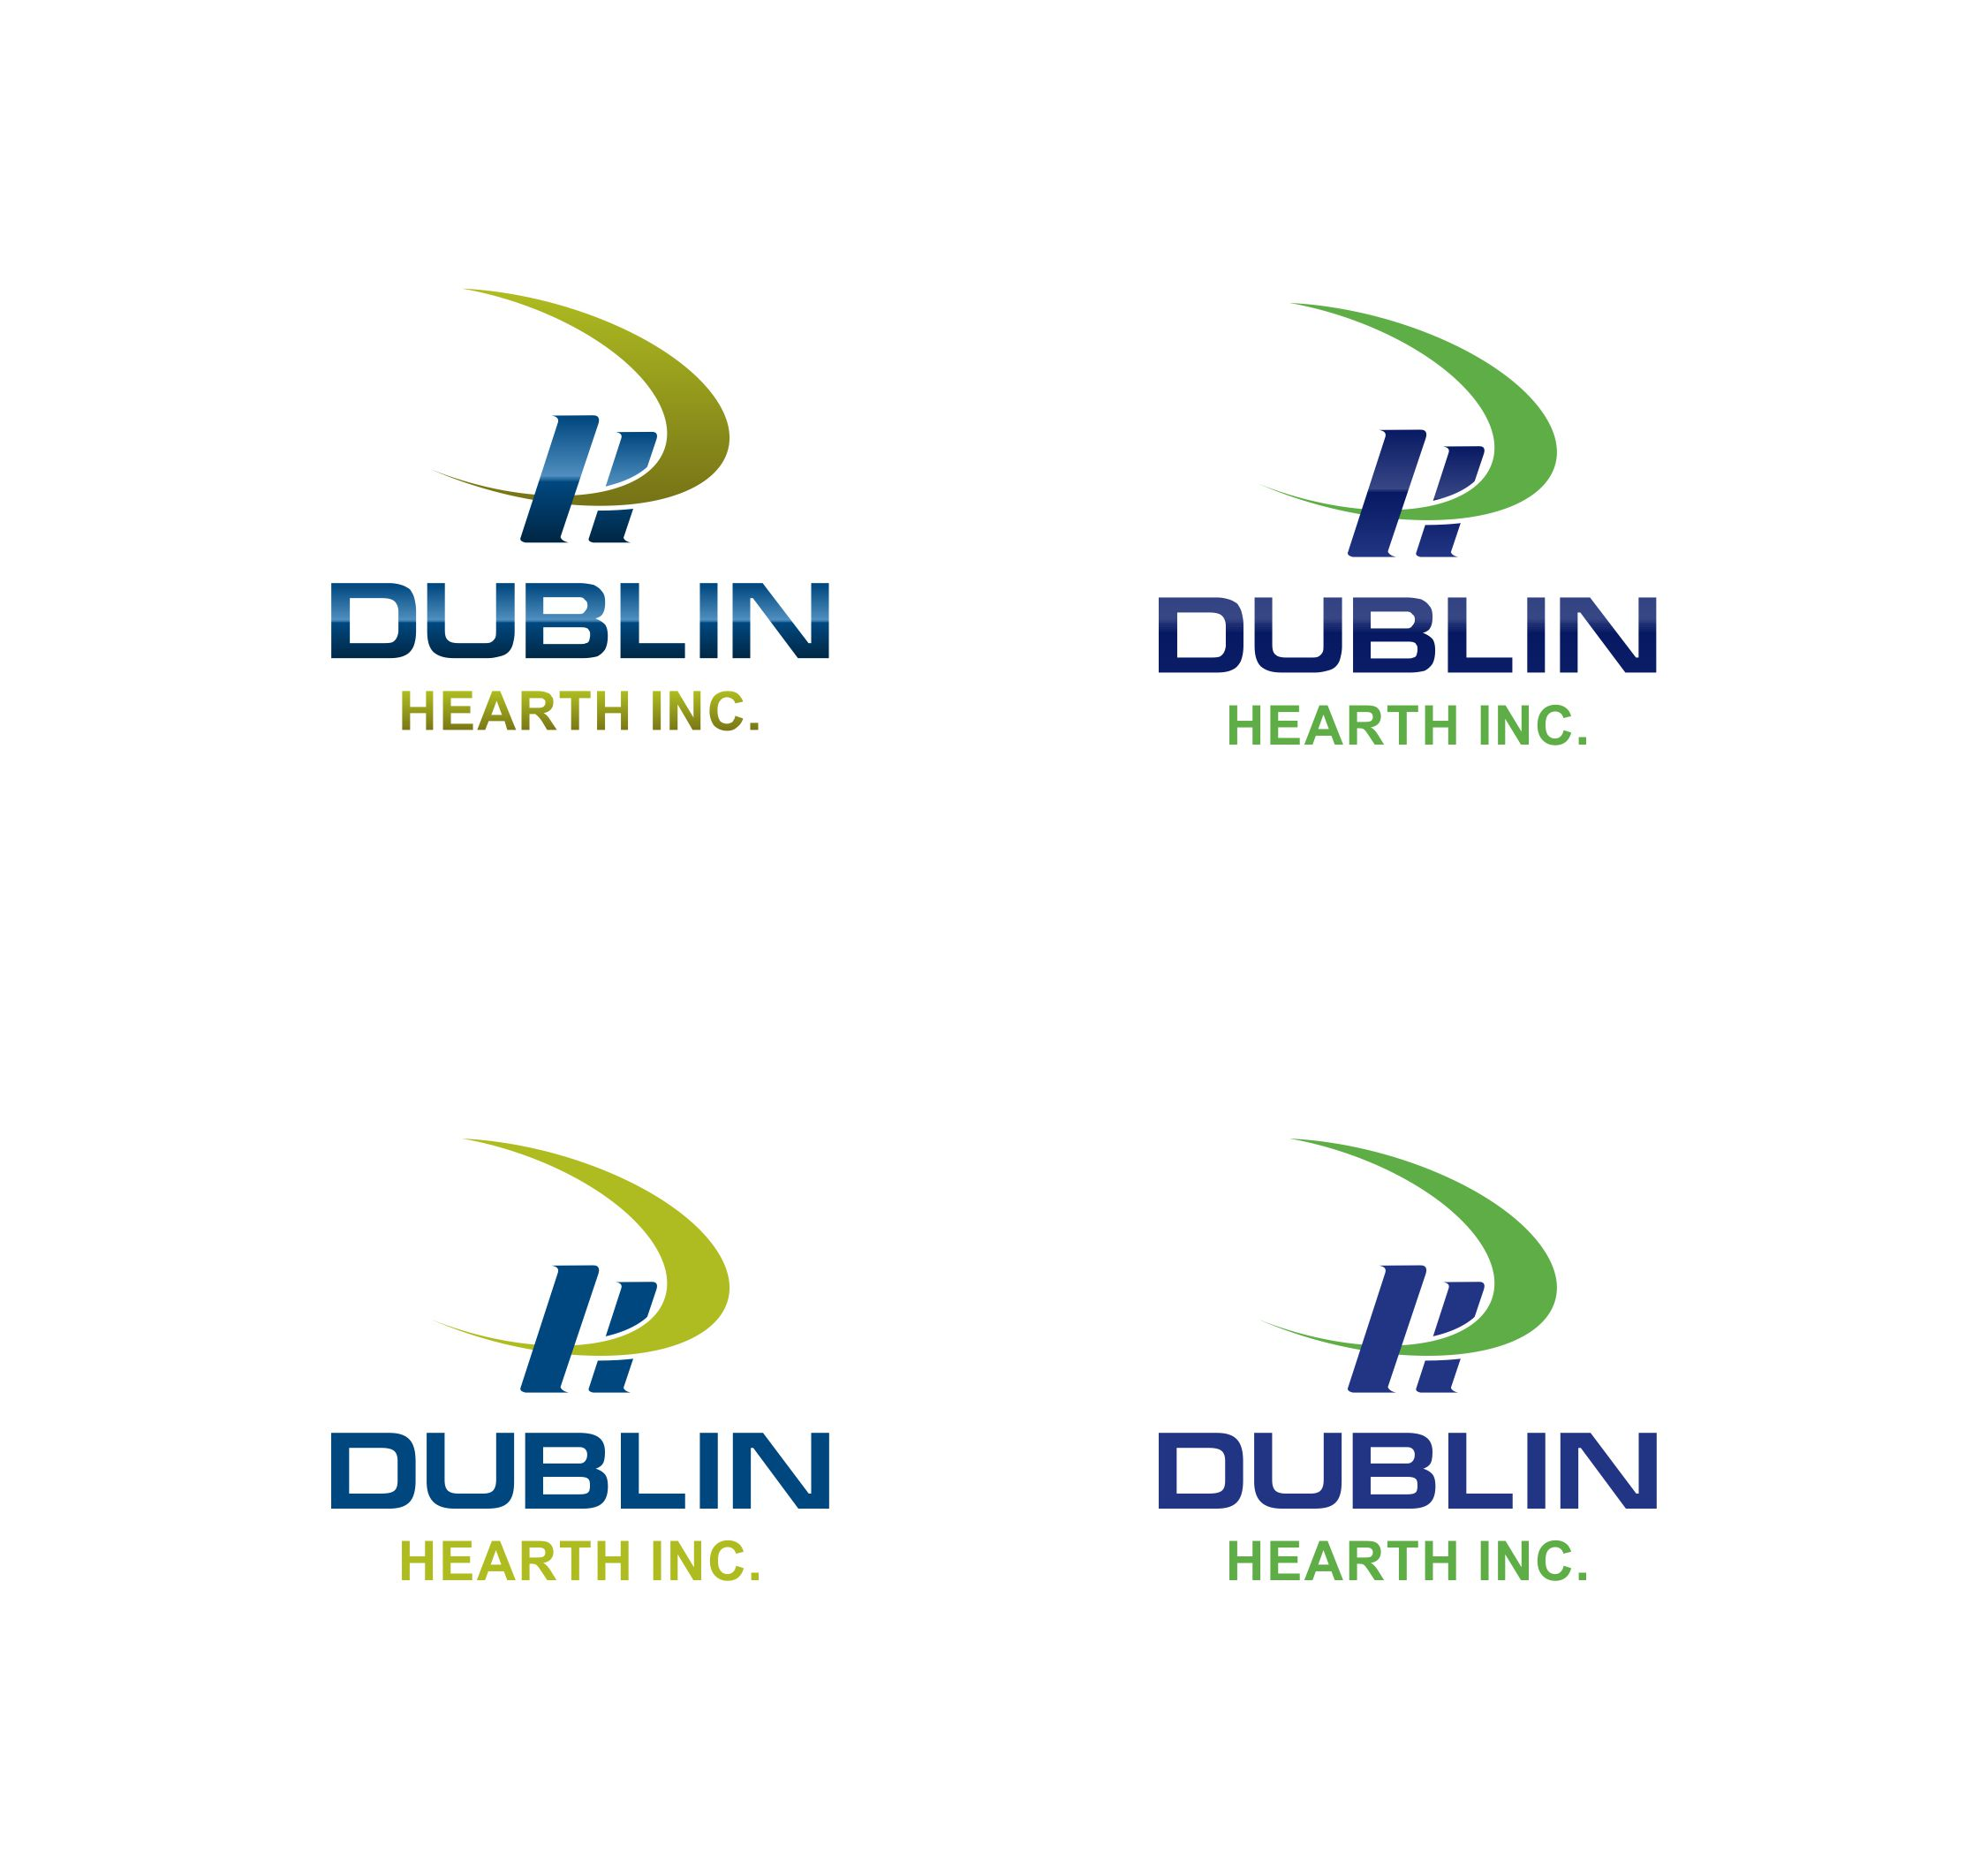 Logo Design by Muhammad Aslam - Entry No. 75 in the Logo Design Contest clean professional  Logo Design for Dublin Hearth Inc. with a splash of fun with letter head.